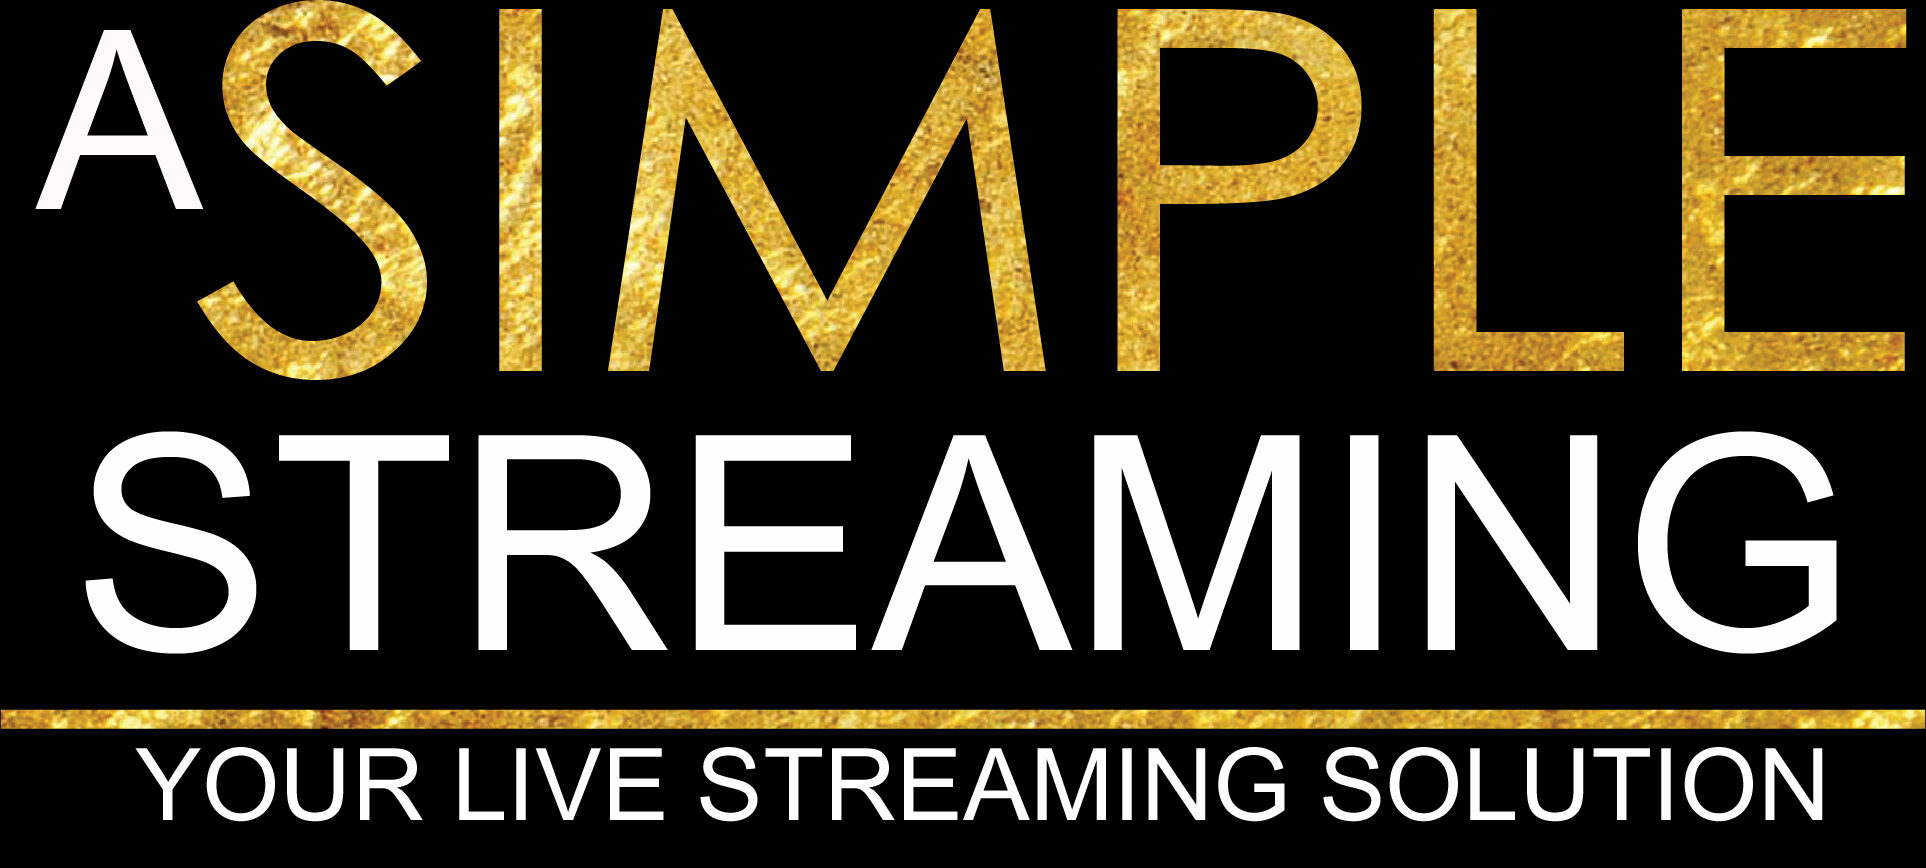 A Simple Streaming